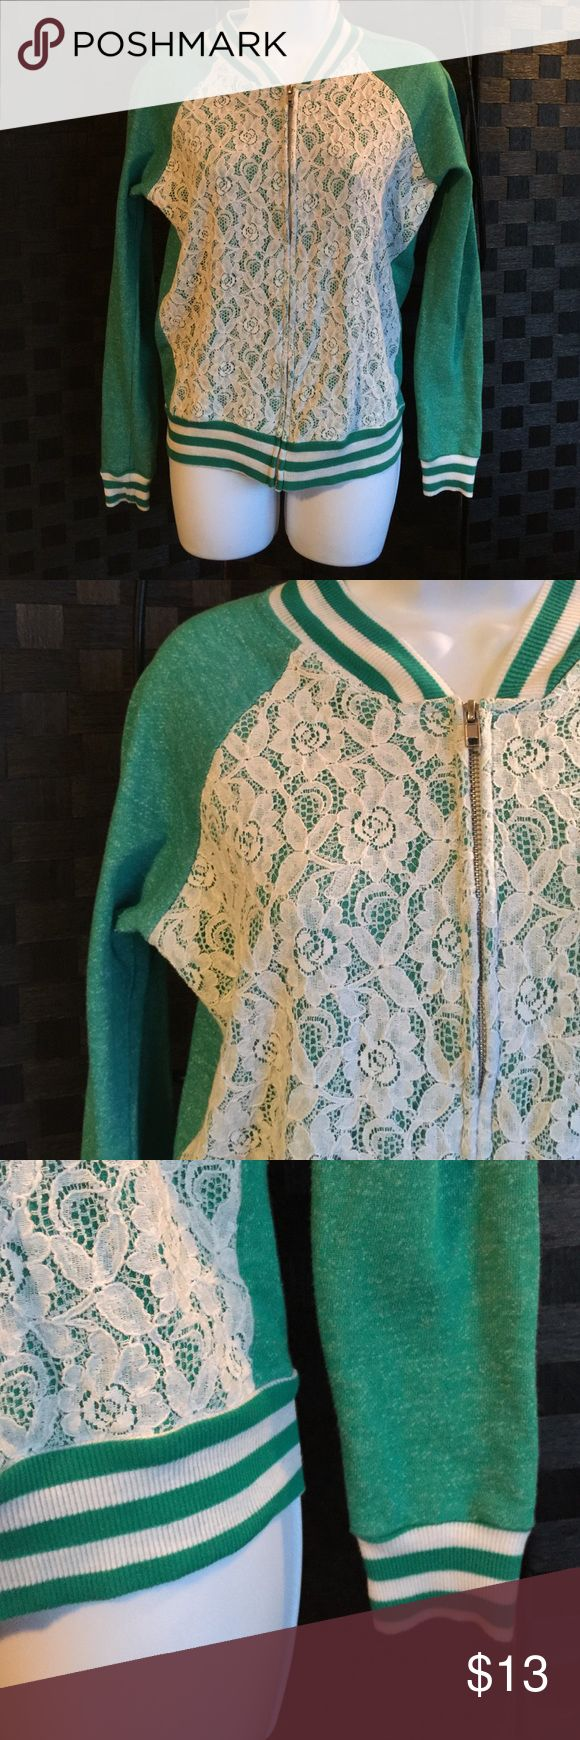 UNIQUE Lace Front Green Zip up jacket / Top CUTE! Washed & worn a few times~ in great condition! This is super cute, pretty green ~kind of unique in color & style! A women's/juniors size Medium ~With a pinch of stretch~ this is thinner (much thinner) sweatshirt like material -with a smoothness to it. A pretty Off white like lace front this zips up & has neat striped trimmings. A thinner top/ jacket like style. Super cute, made by True Freedom this is super soft, cozy & stylish!! Love this…